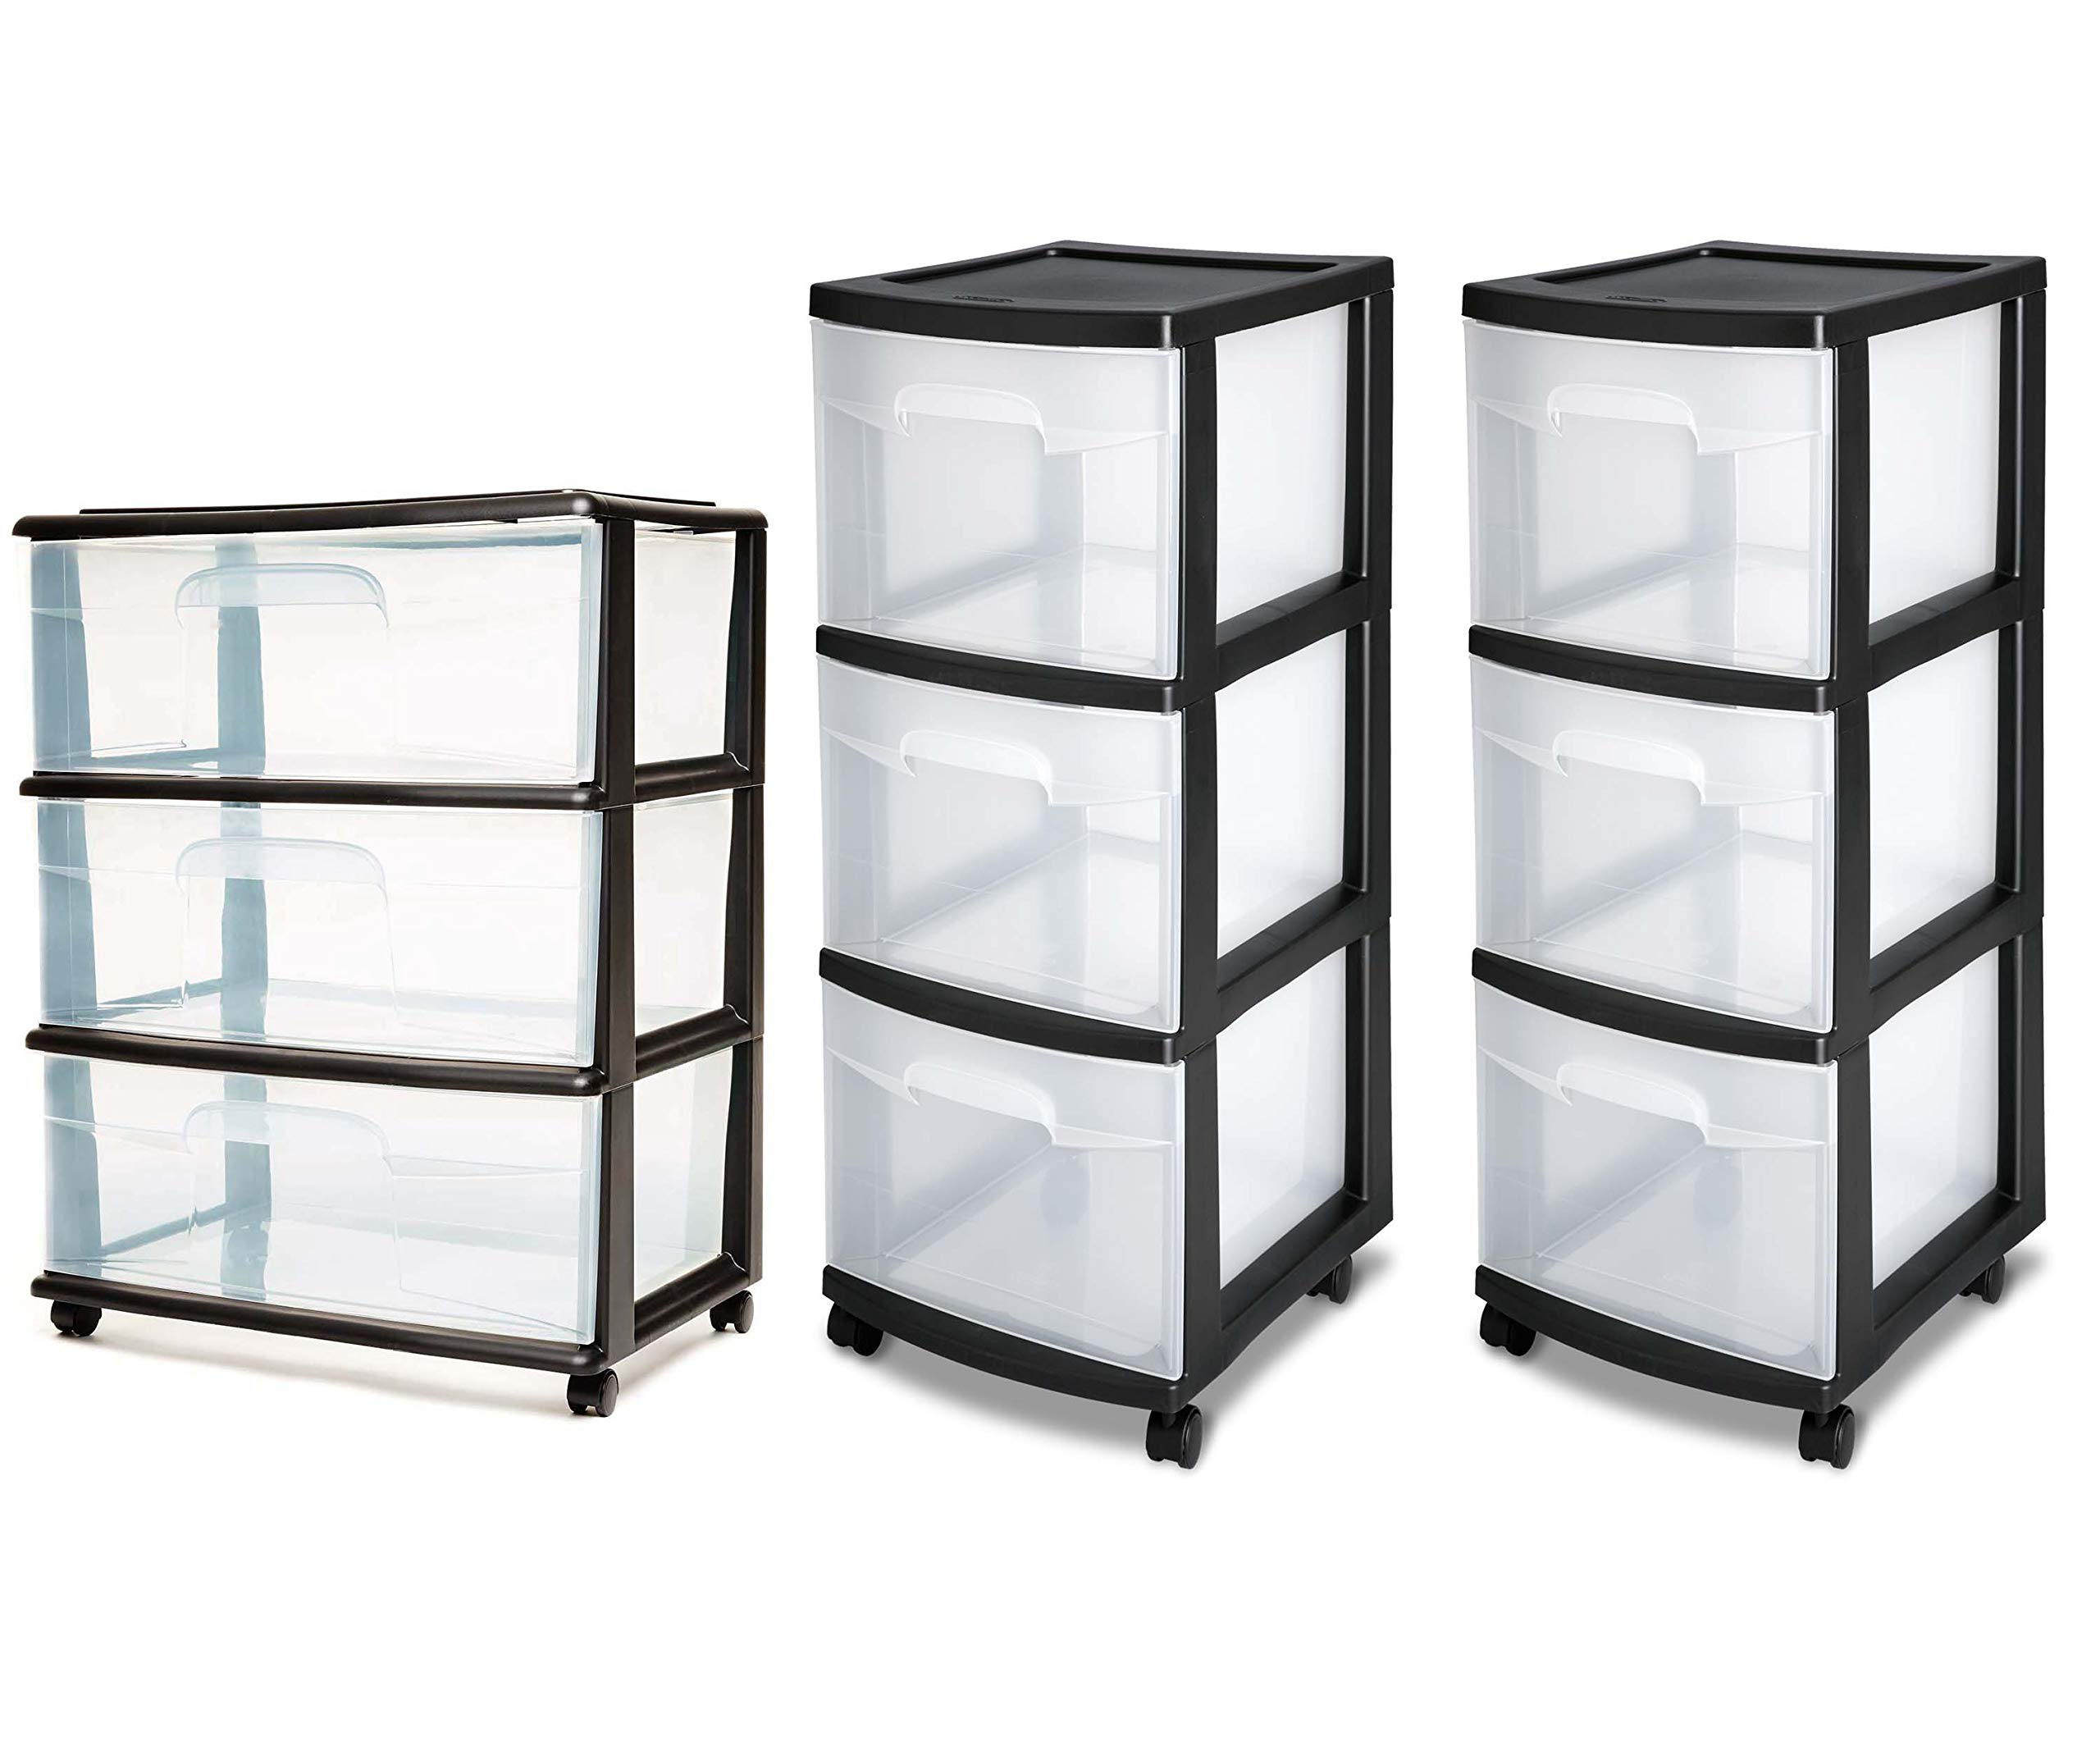 Homz 3 Drawer Wide Cart with Casters/Wheels, Set of 1 Bundle with Sterilite, 3 Drawer Cart in 2-Count by Homz + Sterilite